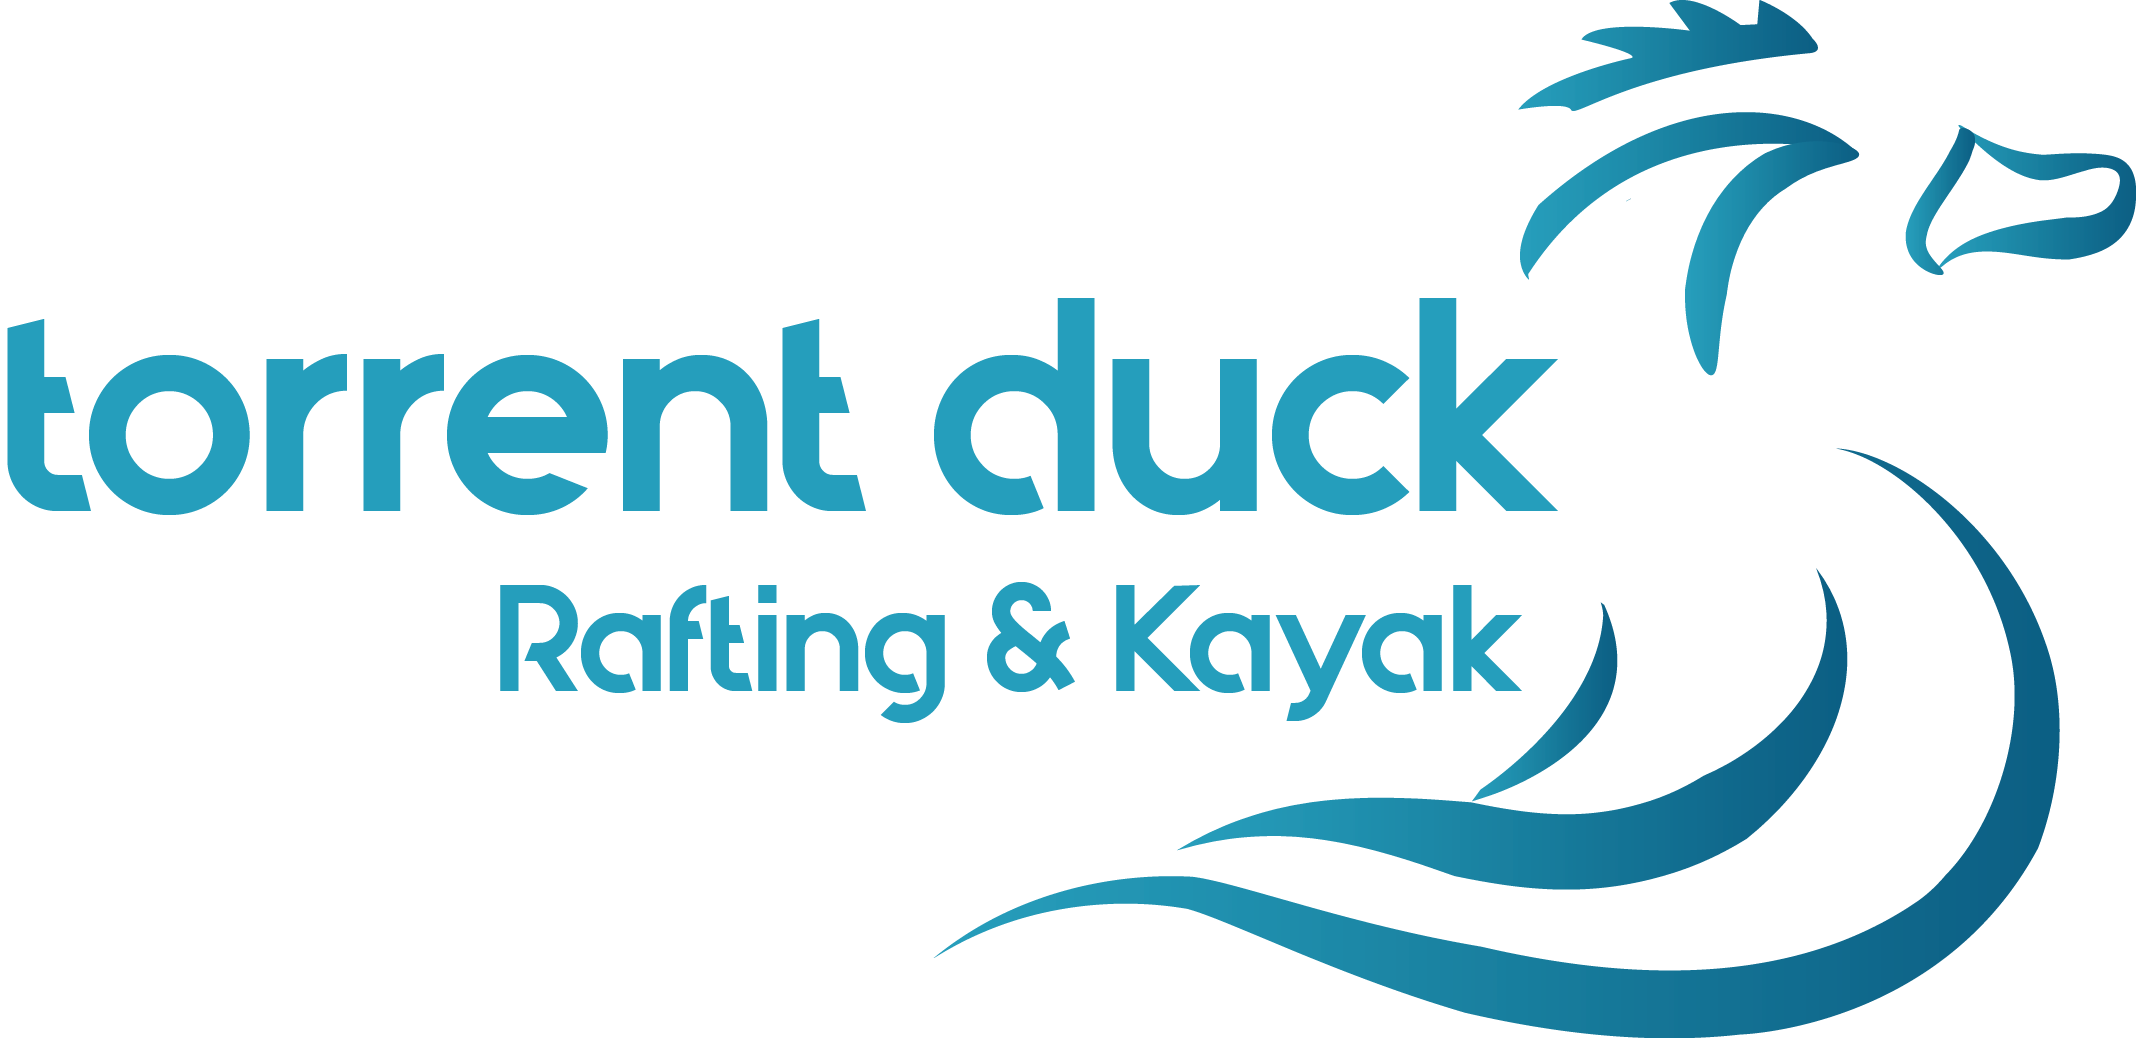 https://www.torrent-duck.com/